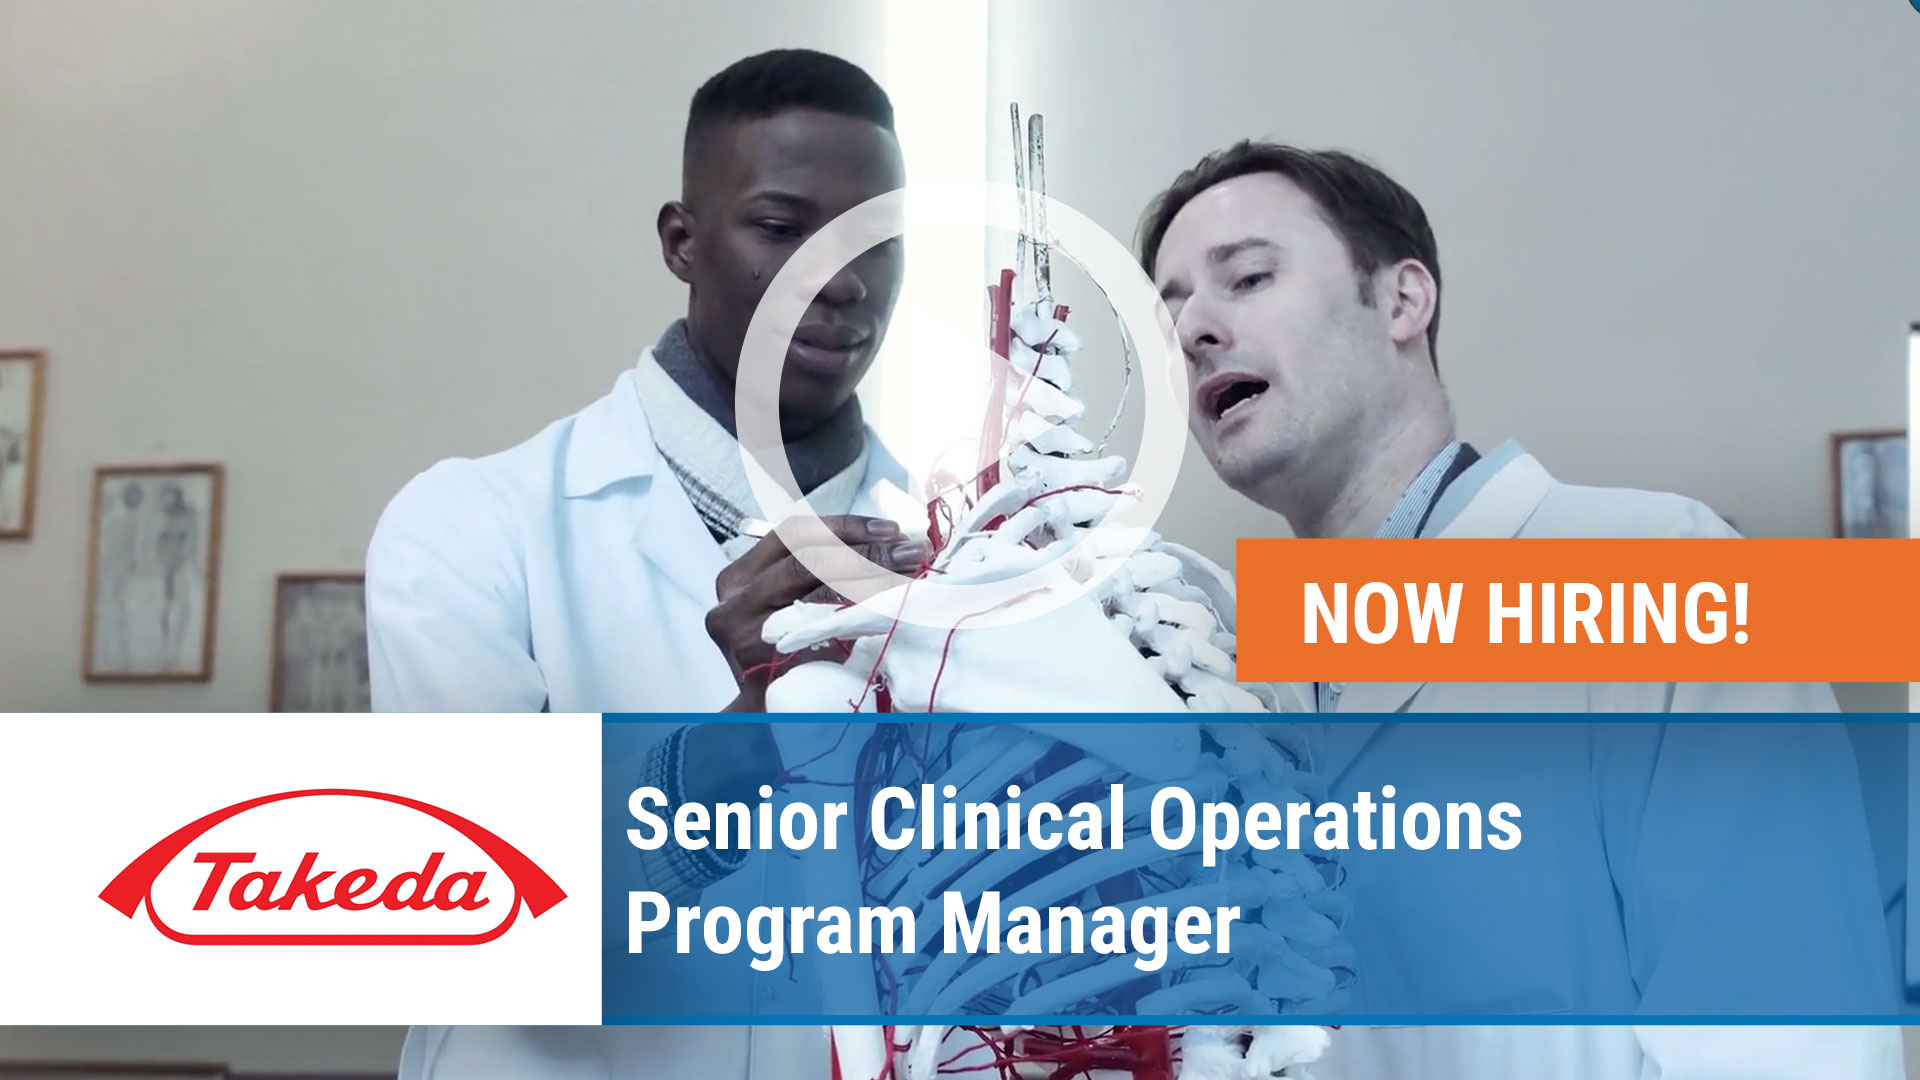 Watch our careers video for available job opening Senior Clinical Operations Program Manager in Cambridge, MA